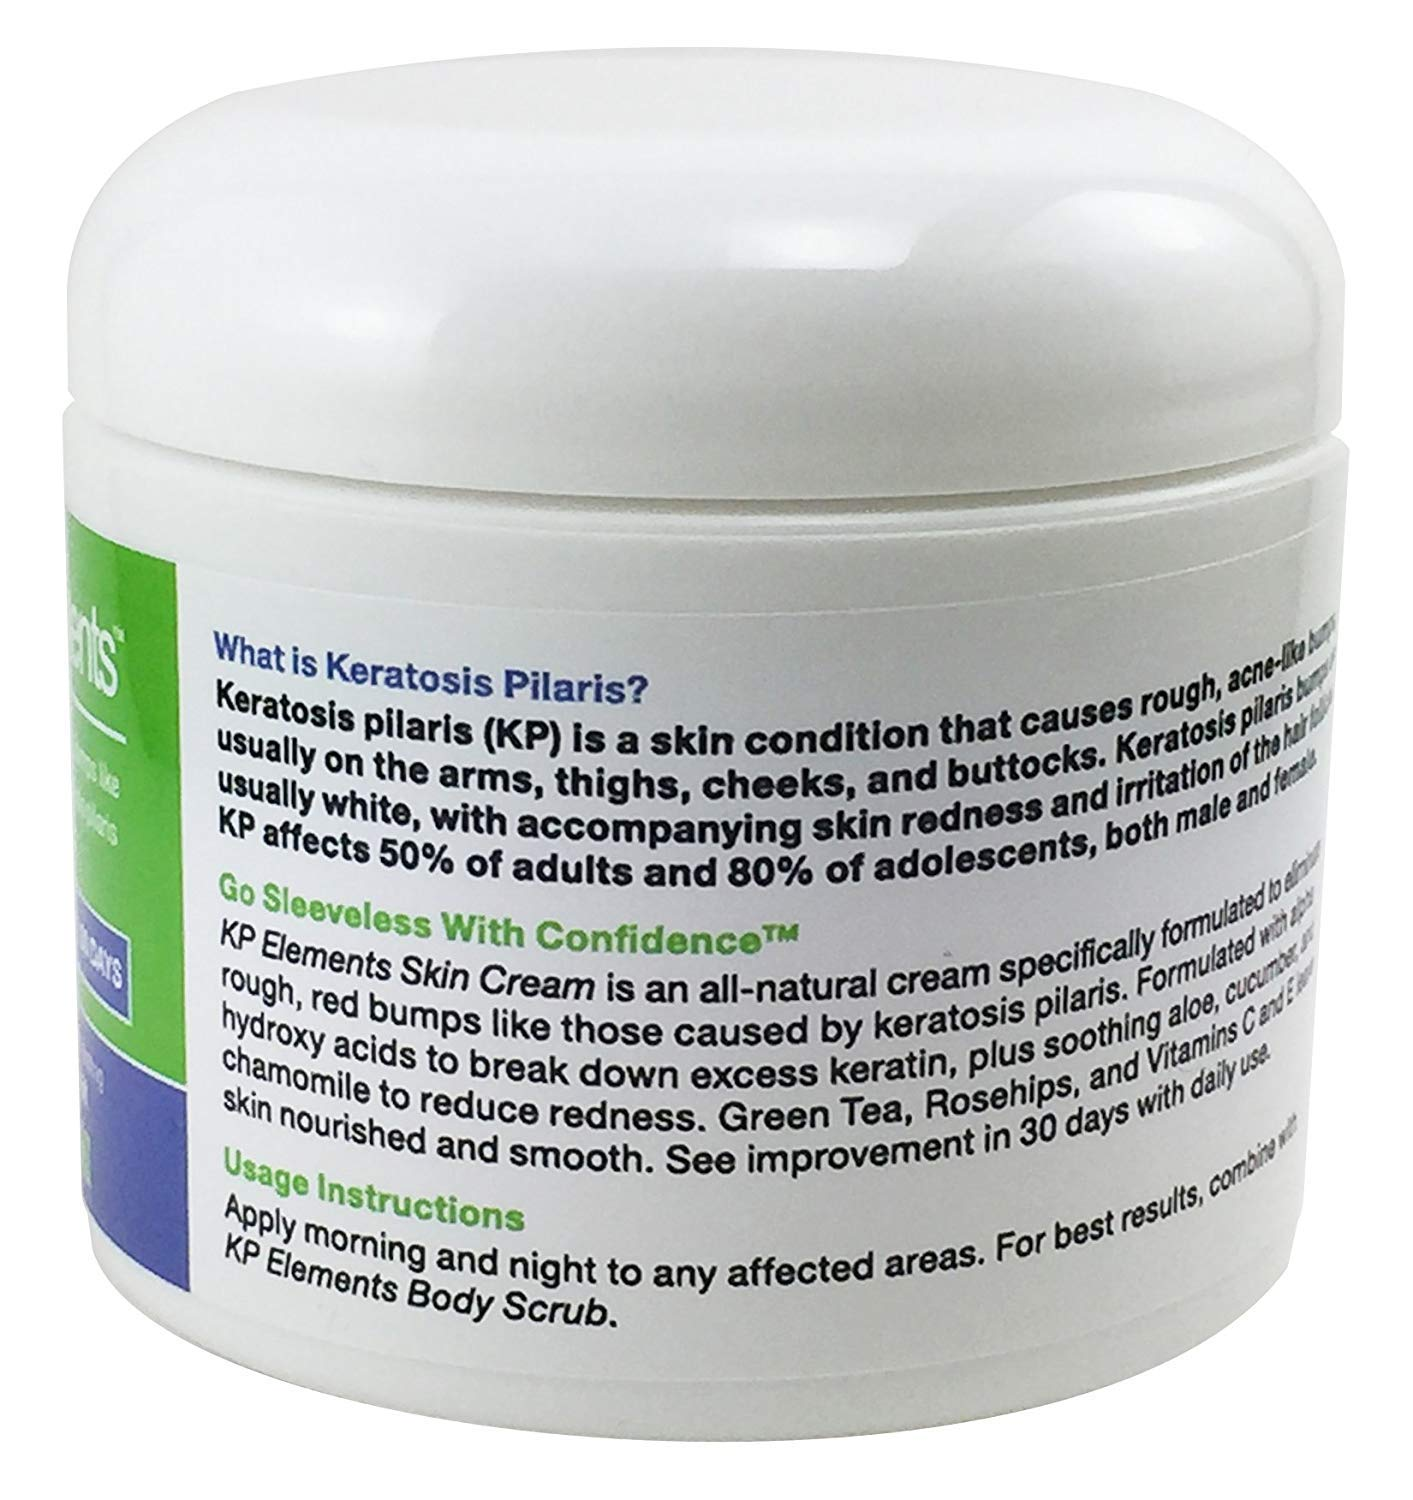 KP Elements Keratosis Pilaris Exfoliating Skin Cream Treatment, 4 fl oz. each, 2 Pack - All-Natural, Soothing, Healing Ingredients by KP Elements (Image #6)